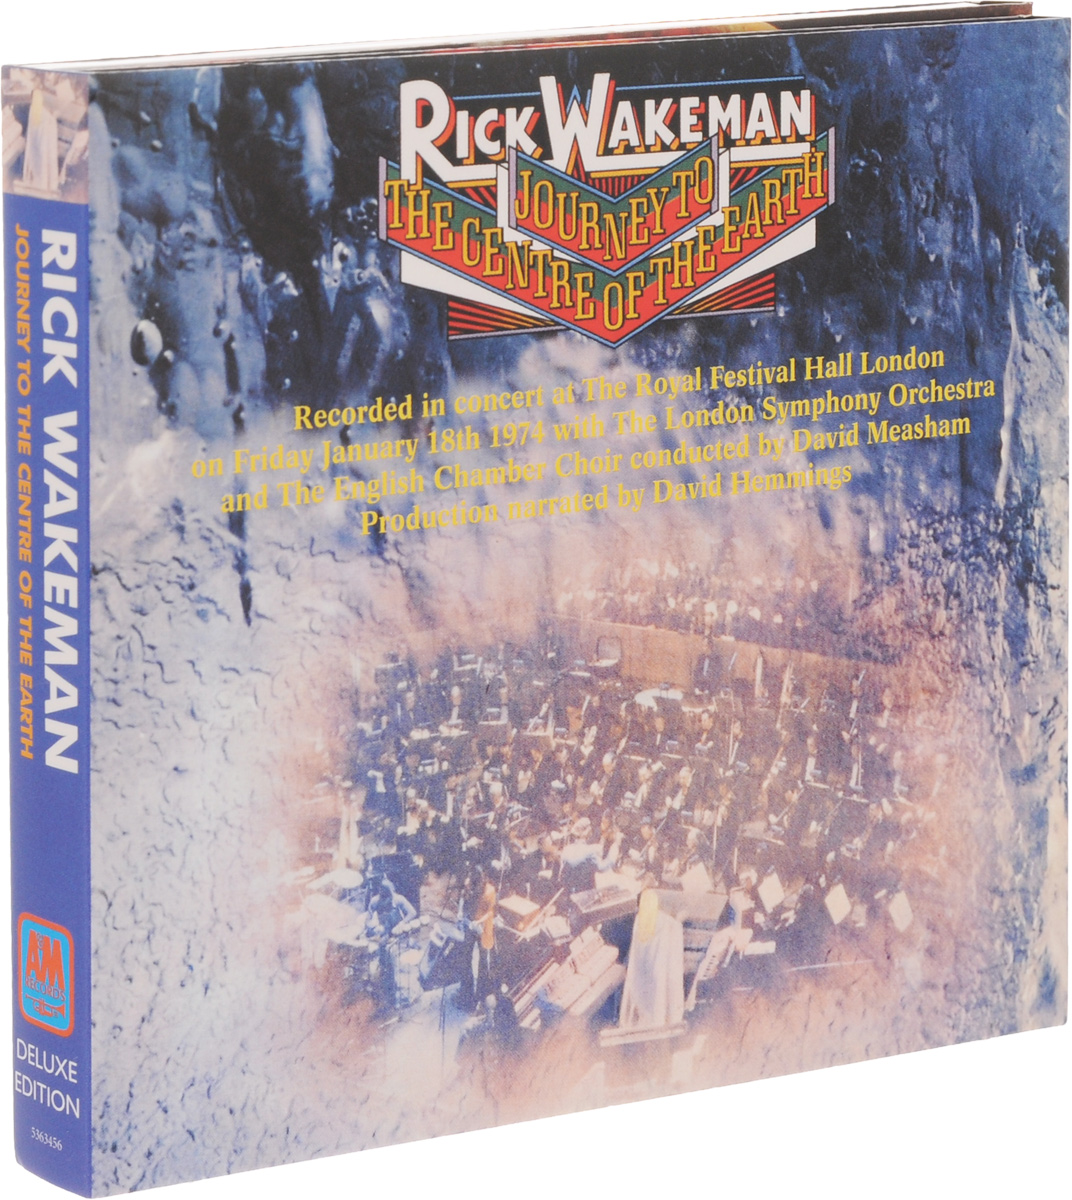 Рик Уэйкман Rick Wakeman. Journey To The Centre Of The Eart. Deluxe Edition (CD + DVD) verne j journey to the centre of the earth activity book